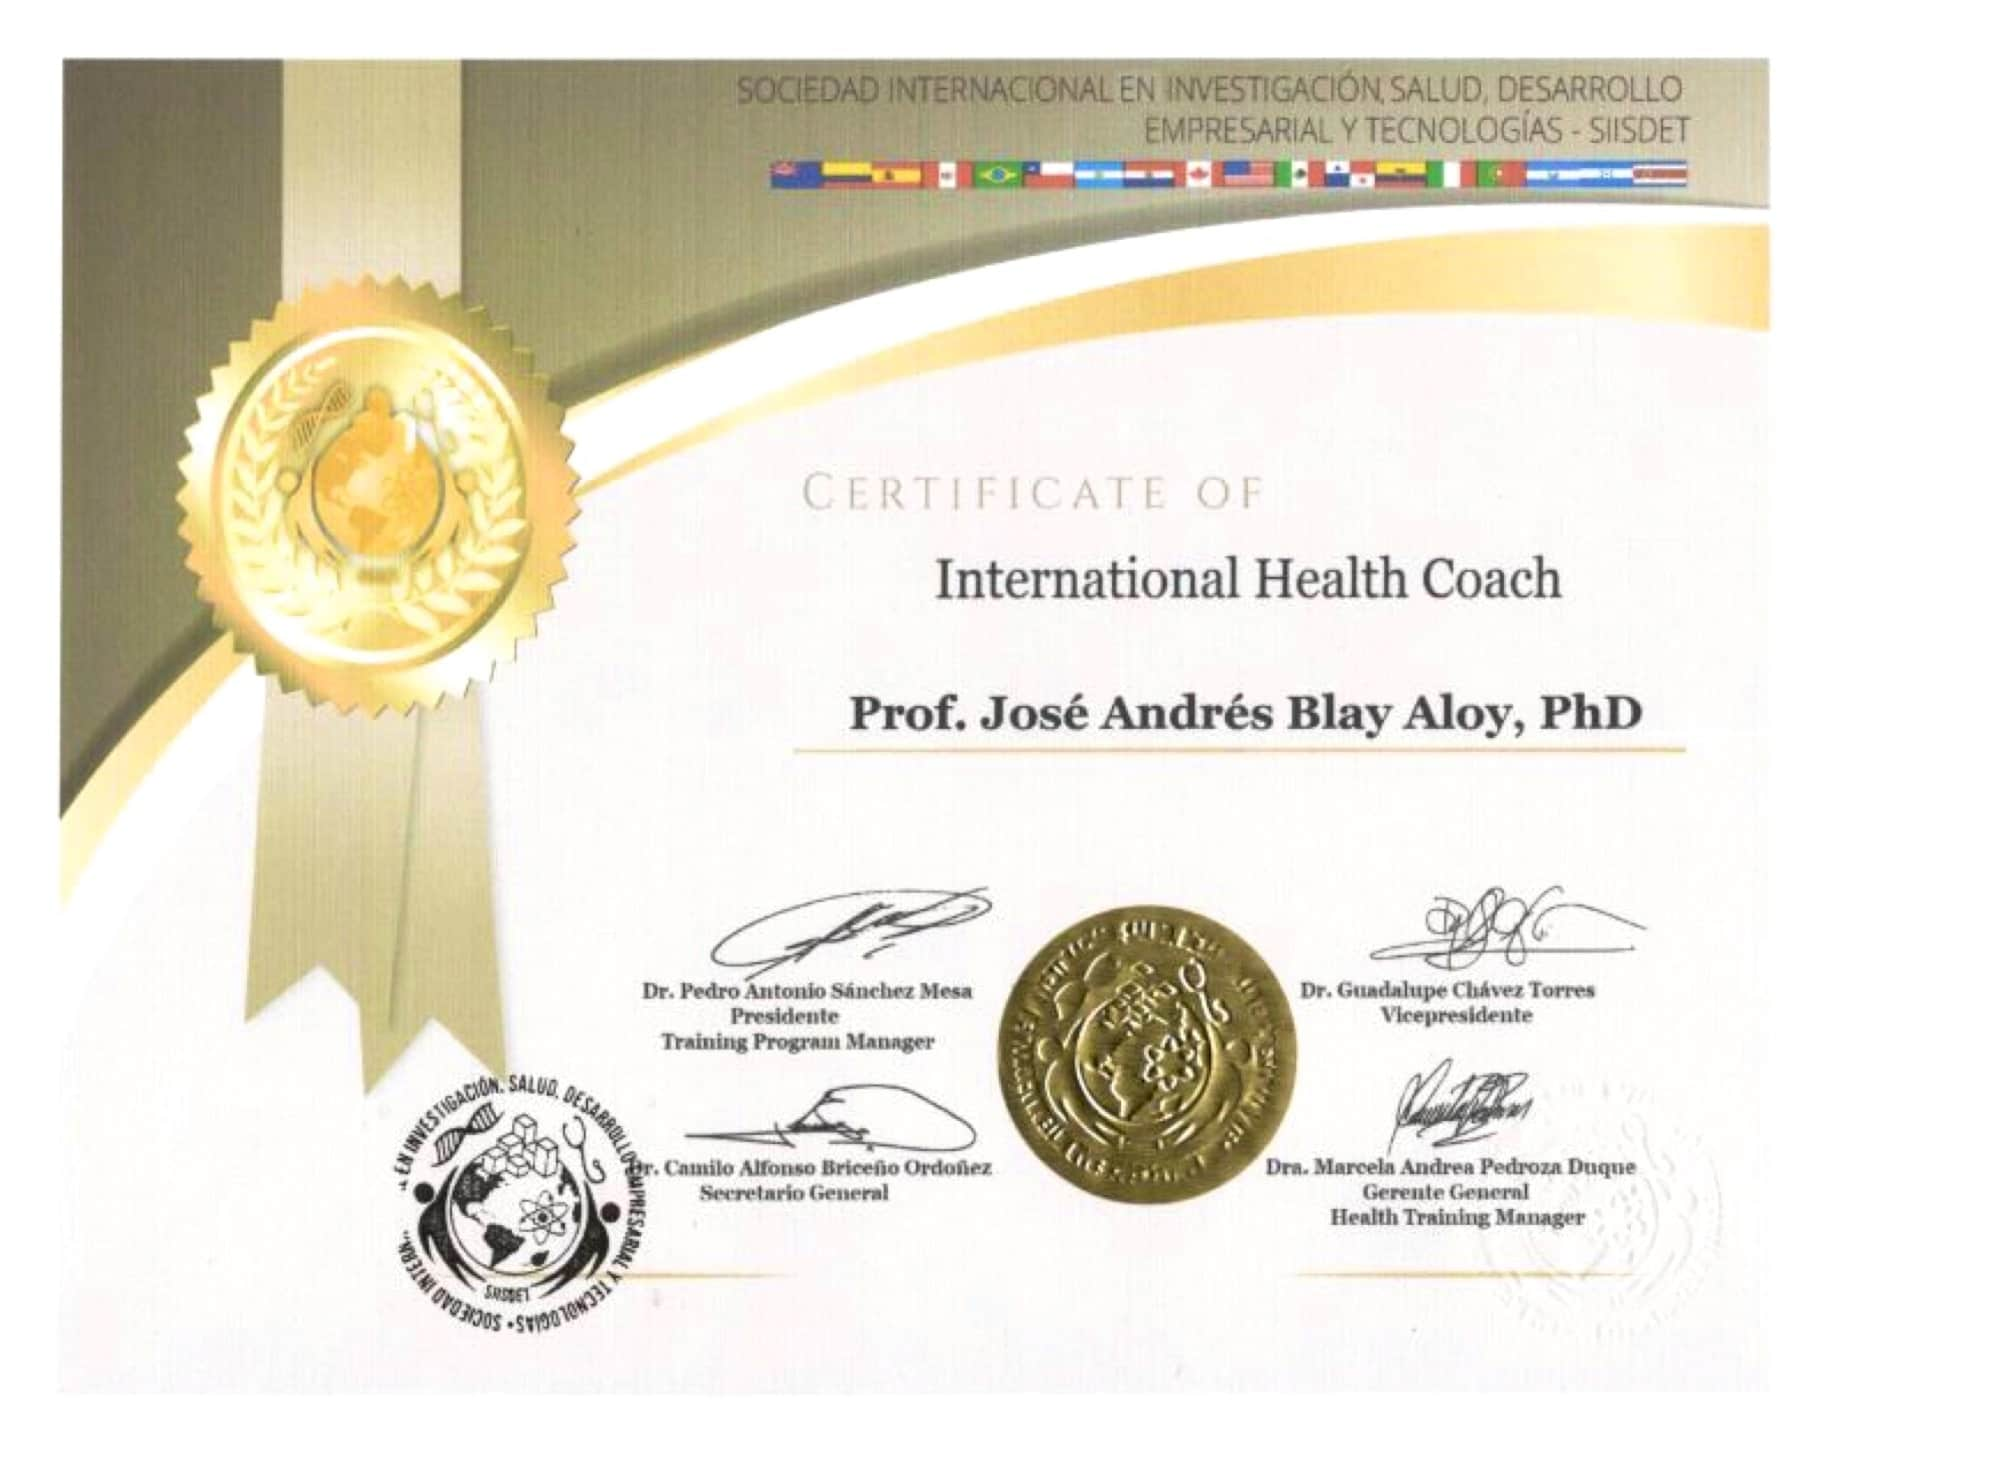 International Health Coach Jose Andres Blay Aloy